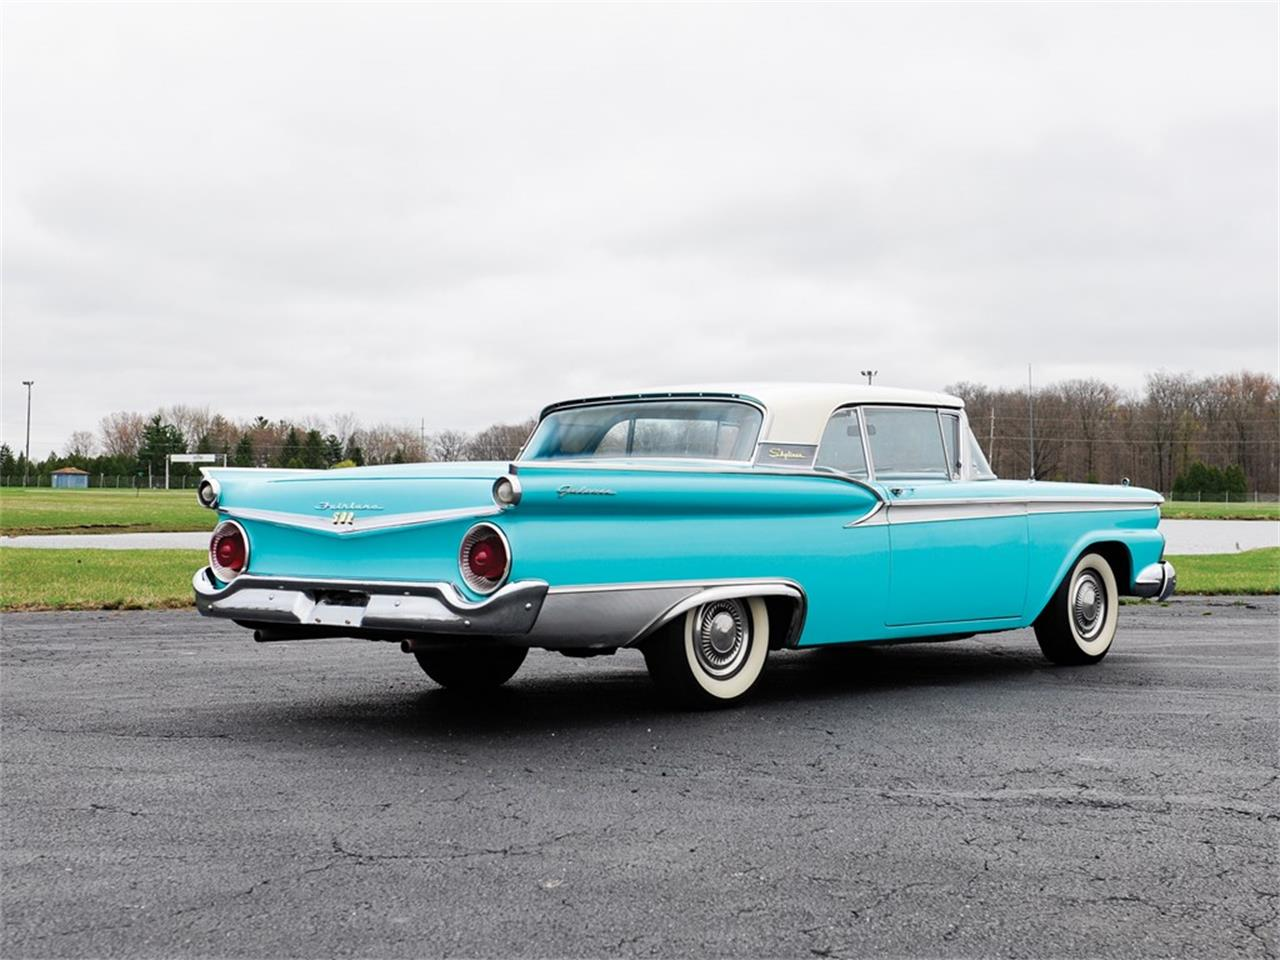 Large Picture of 1959 Ford Galaxie Skyliner located in Indiana - Q12T